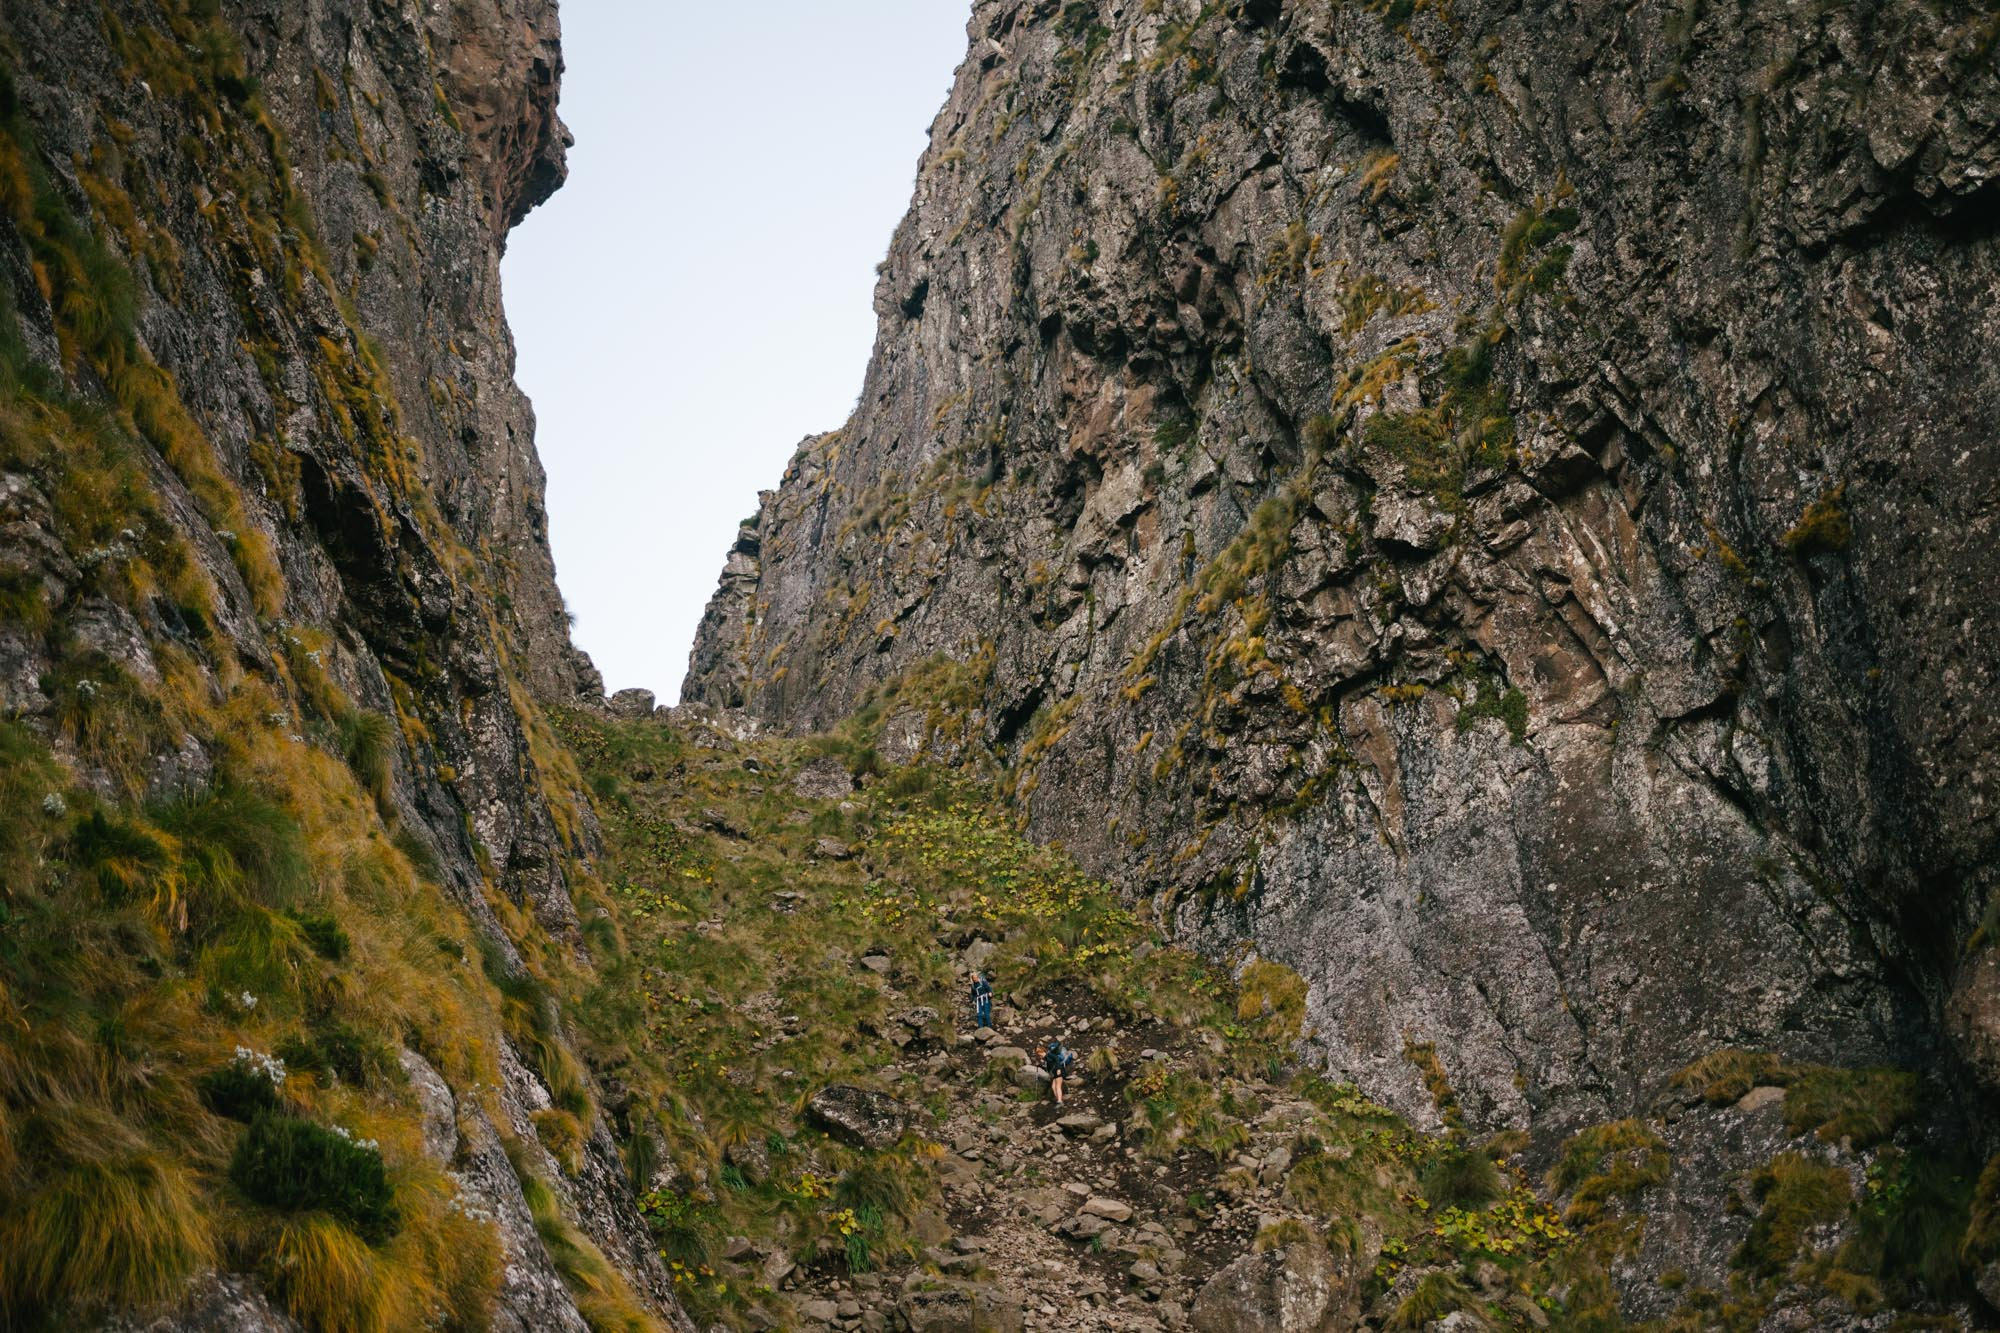 Looking back up Bugger's Gulley - it is hard to convey how steep and loose this section of scree was!